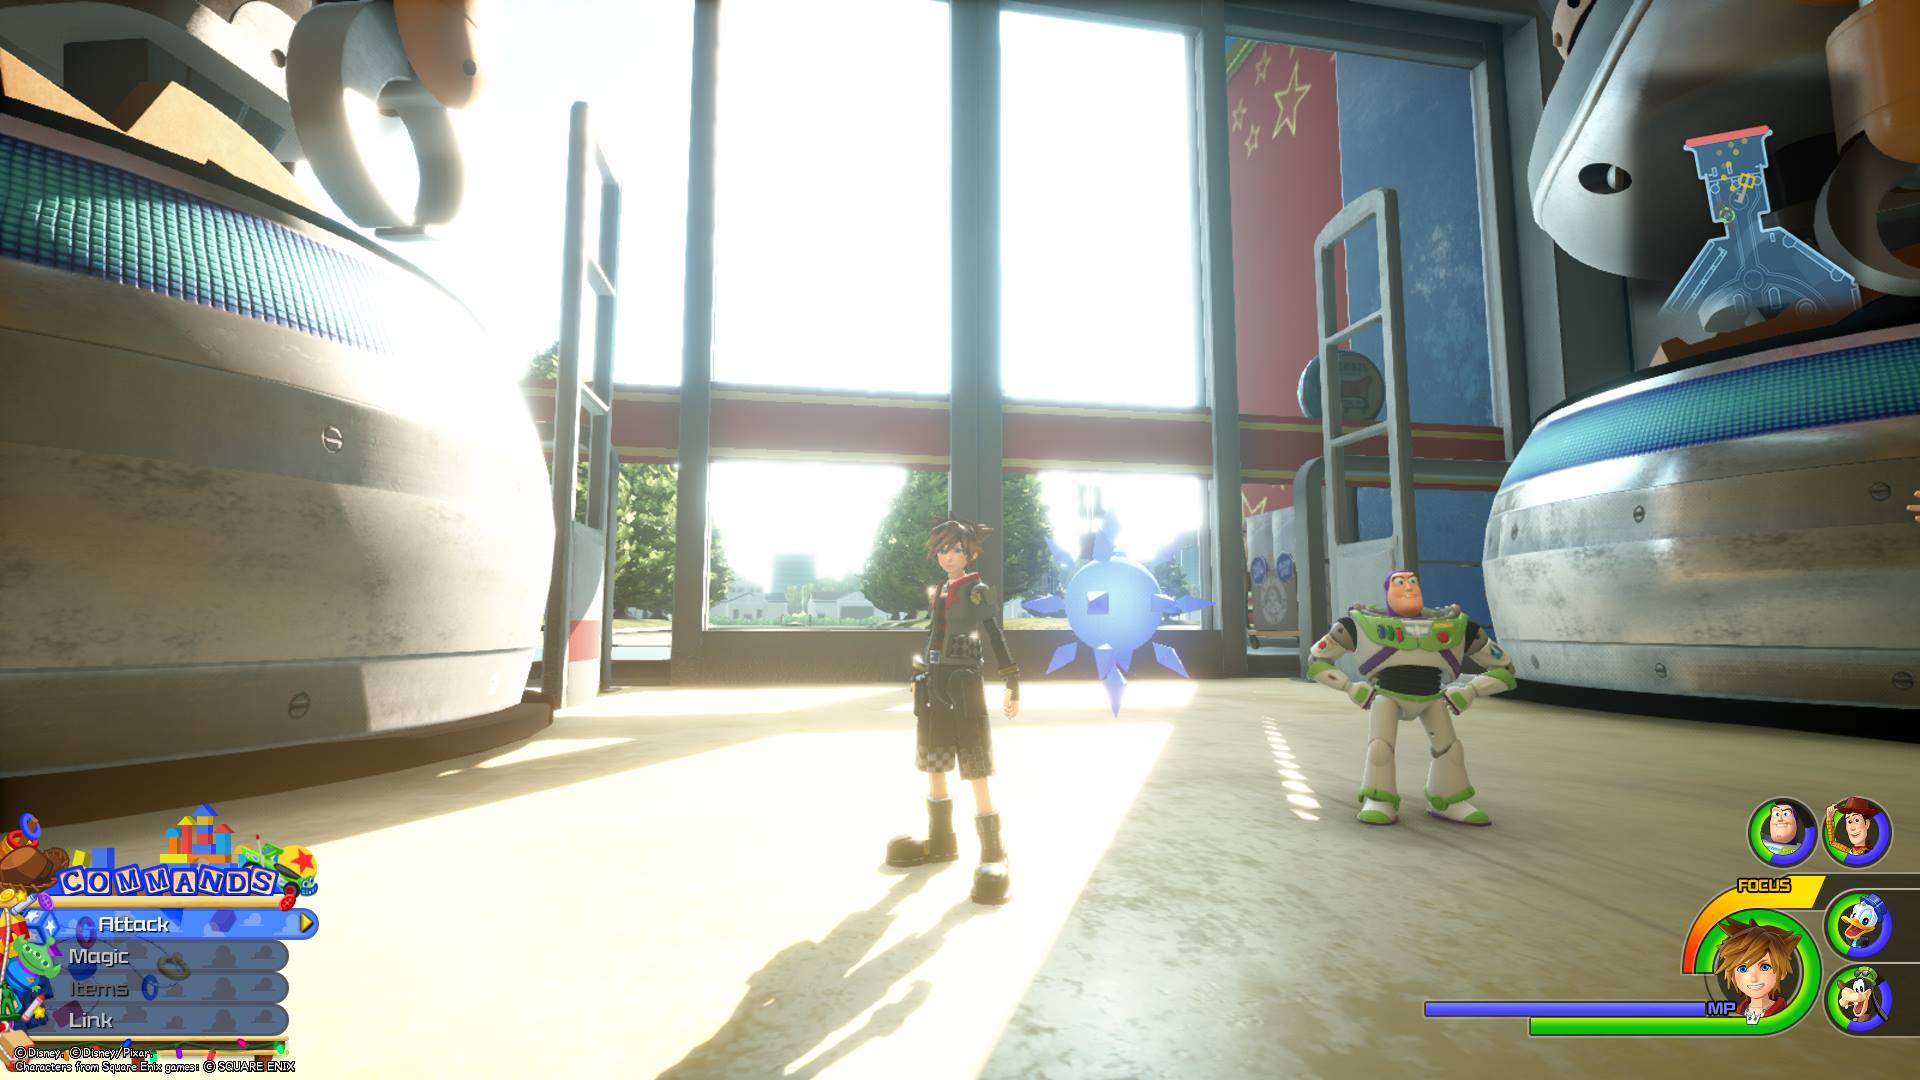 The fifth Battlegate in Kingdom Hearts 3 is located in the Galaxy Toys entrance area of Toy Box.